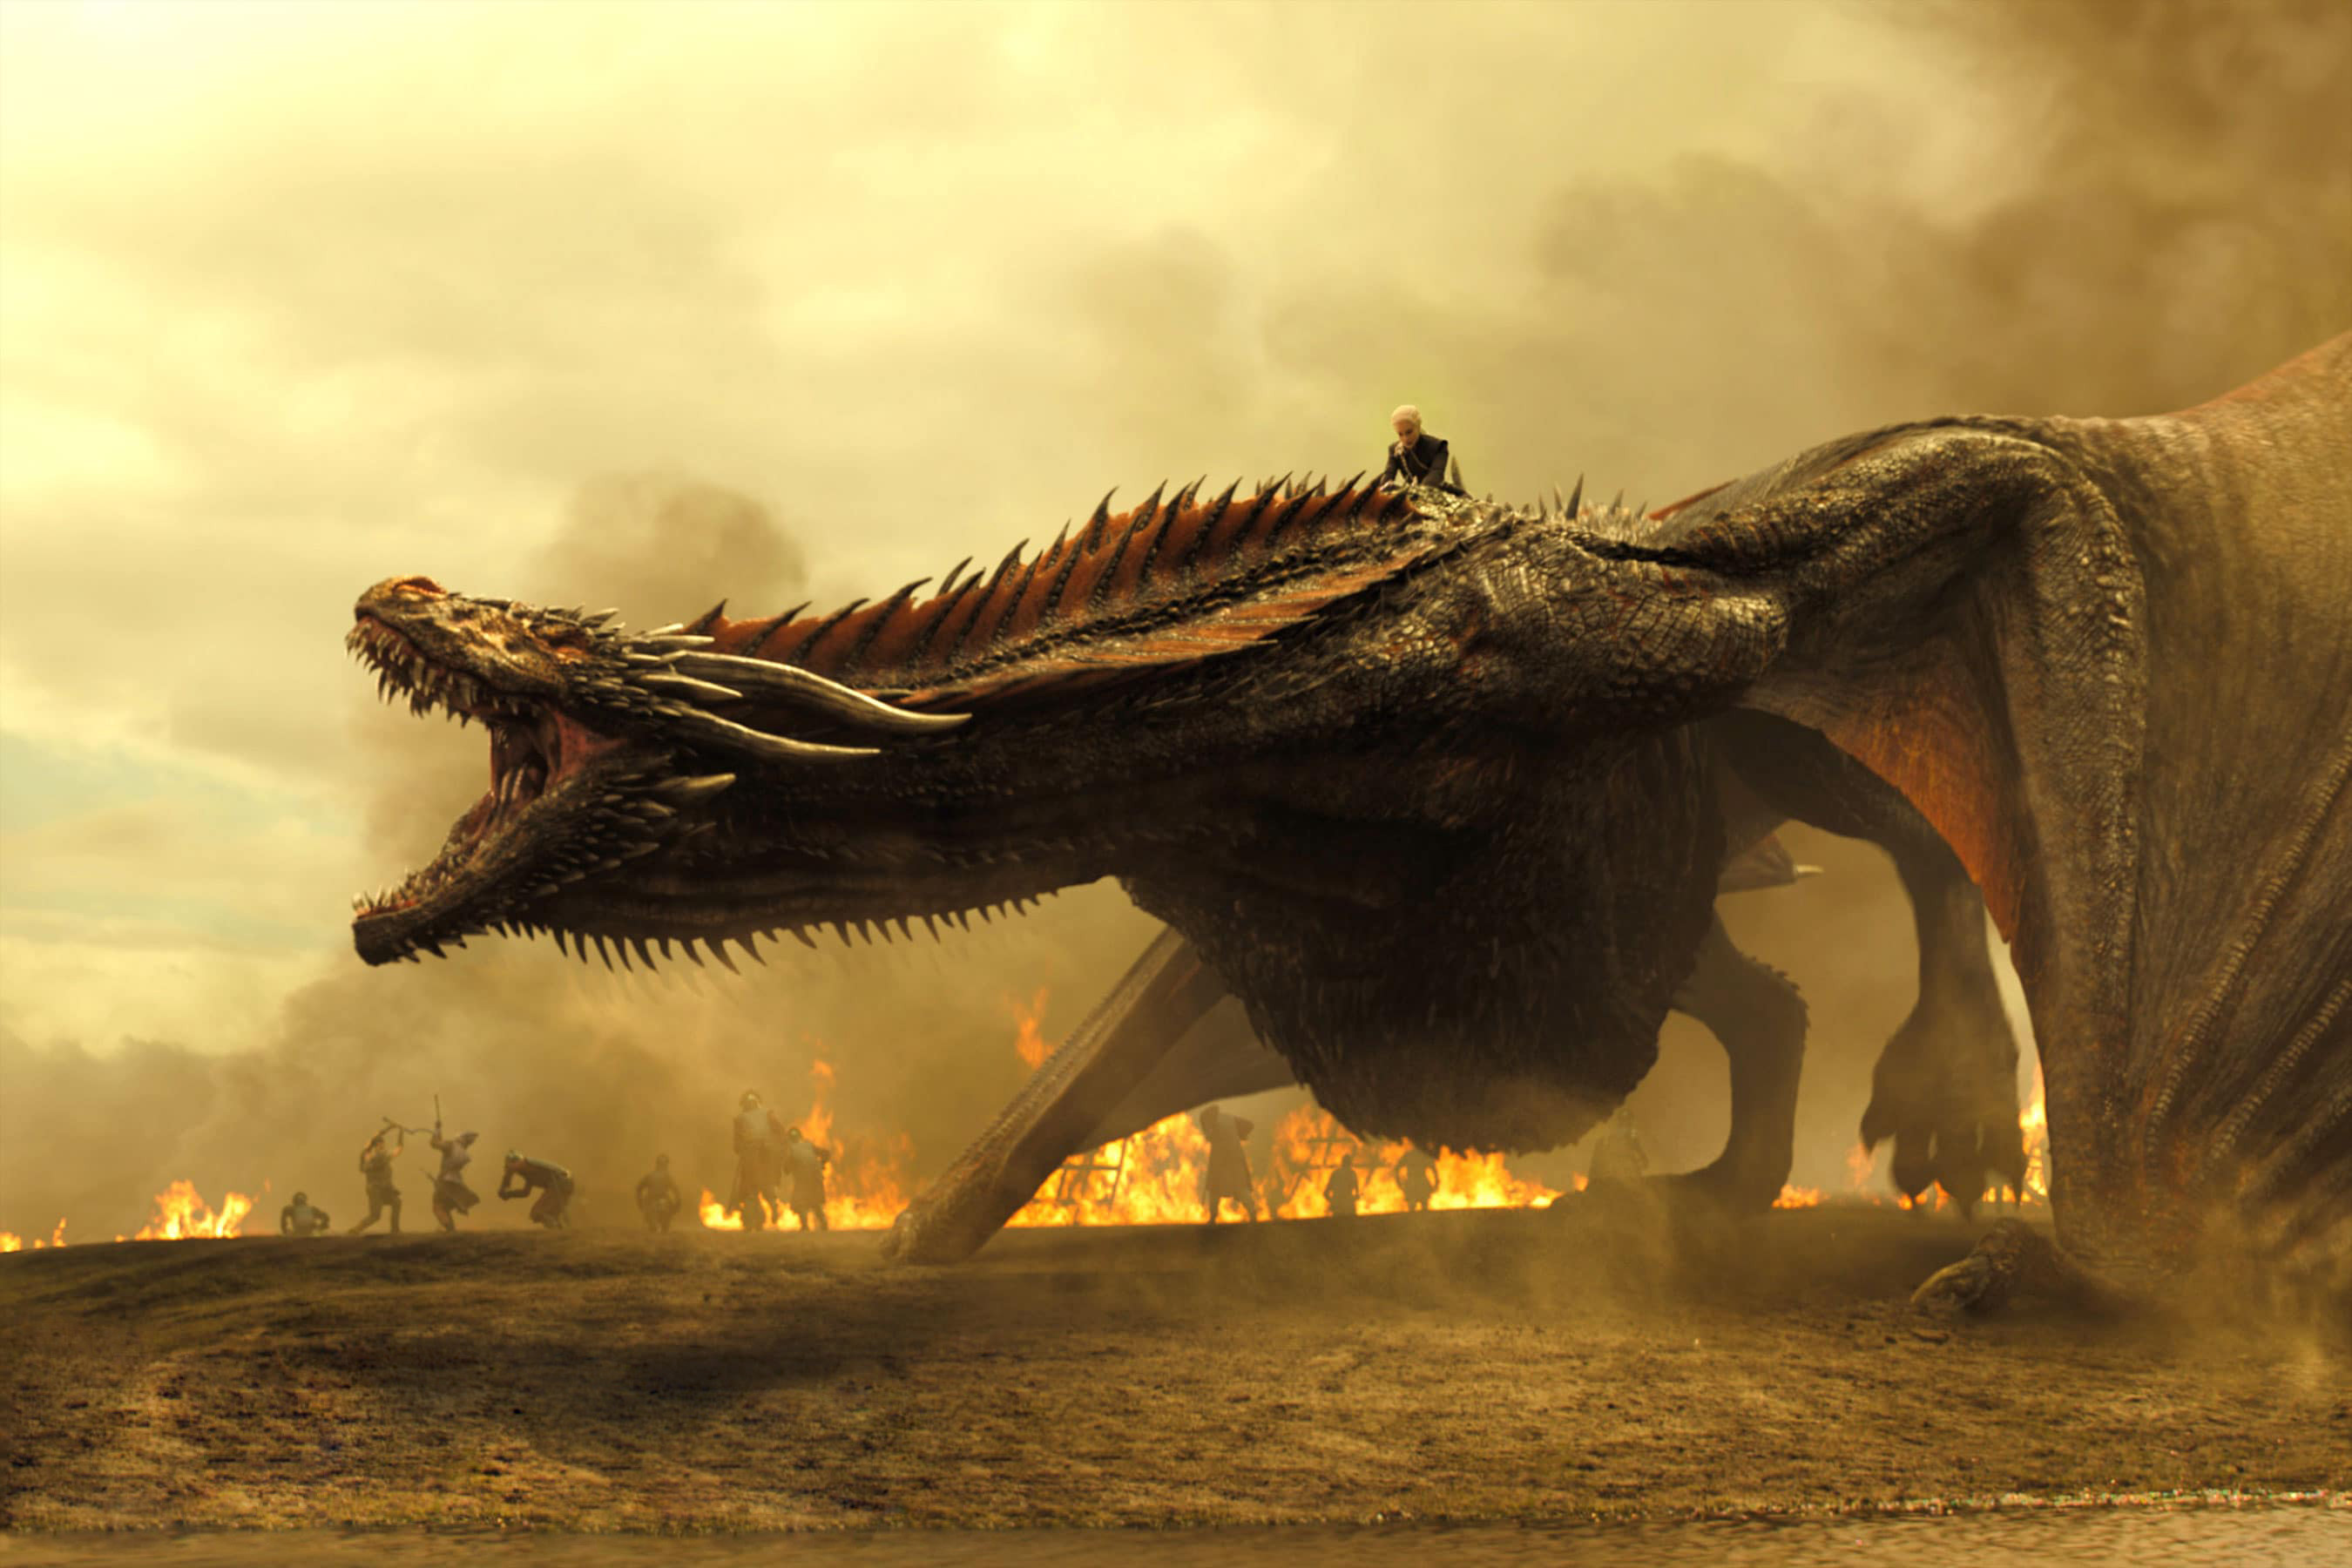 game of thrones season 7 drogon and khaleesi images